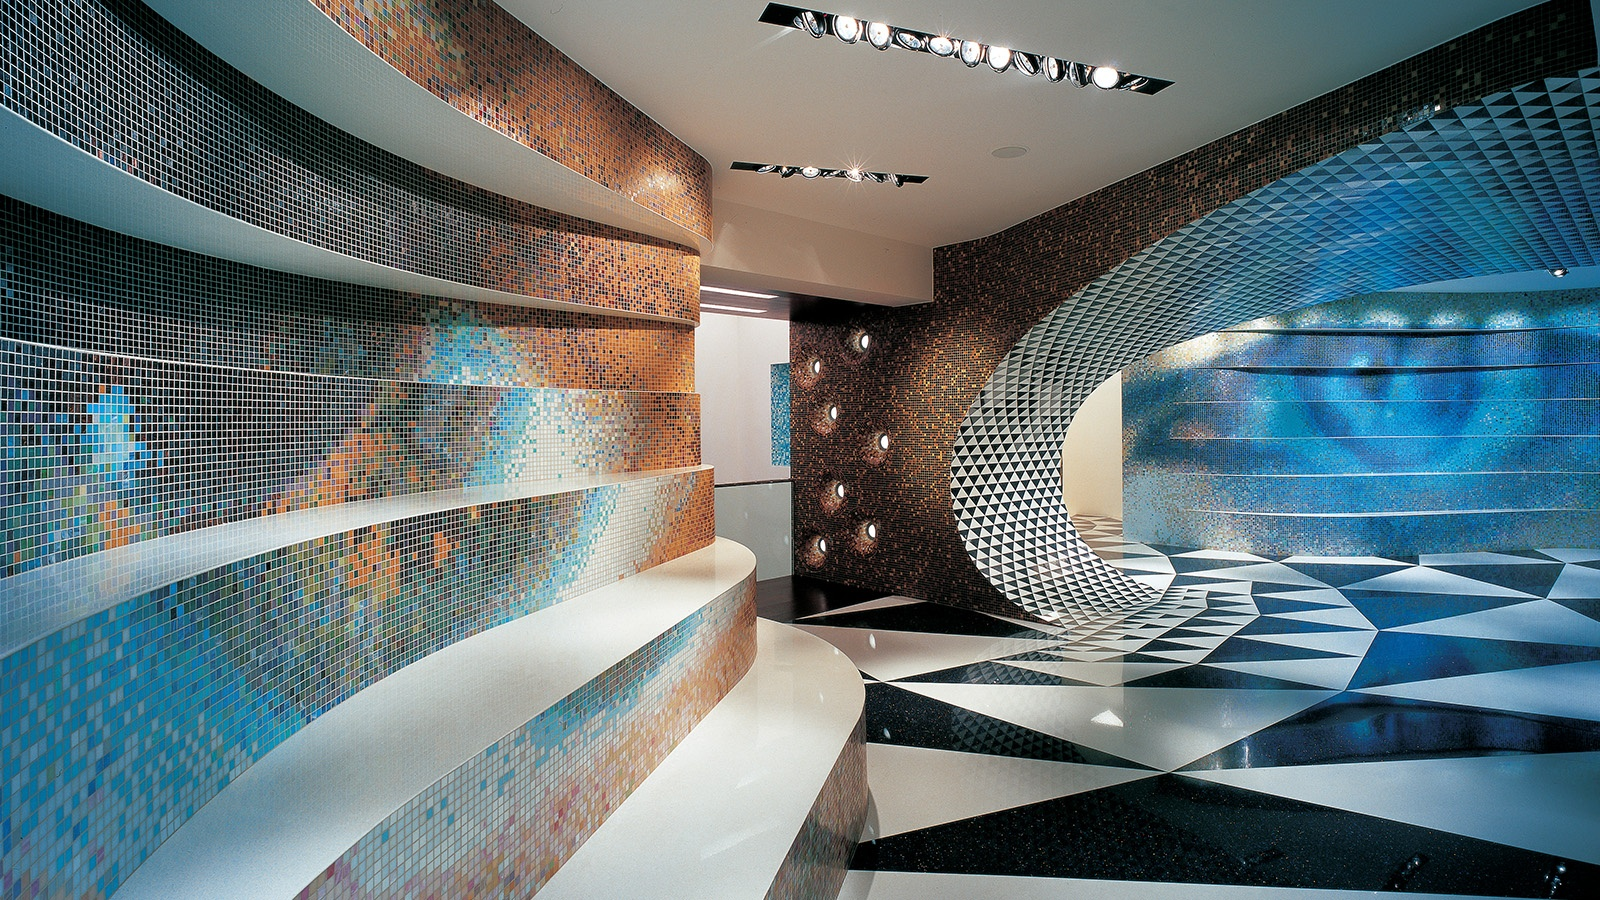 bisazza_0006_03_Bisazza_showroom_Berlino_2003